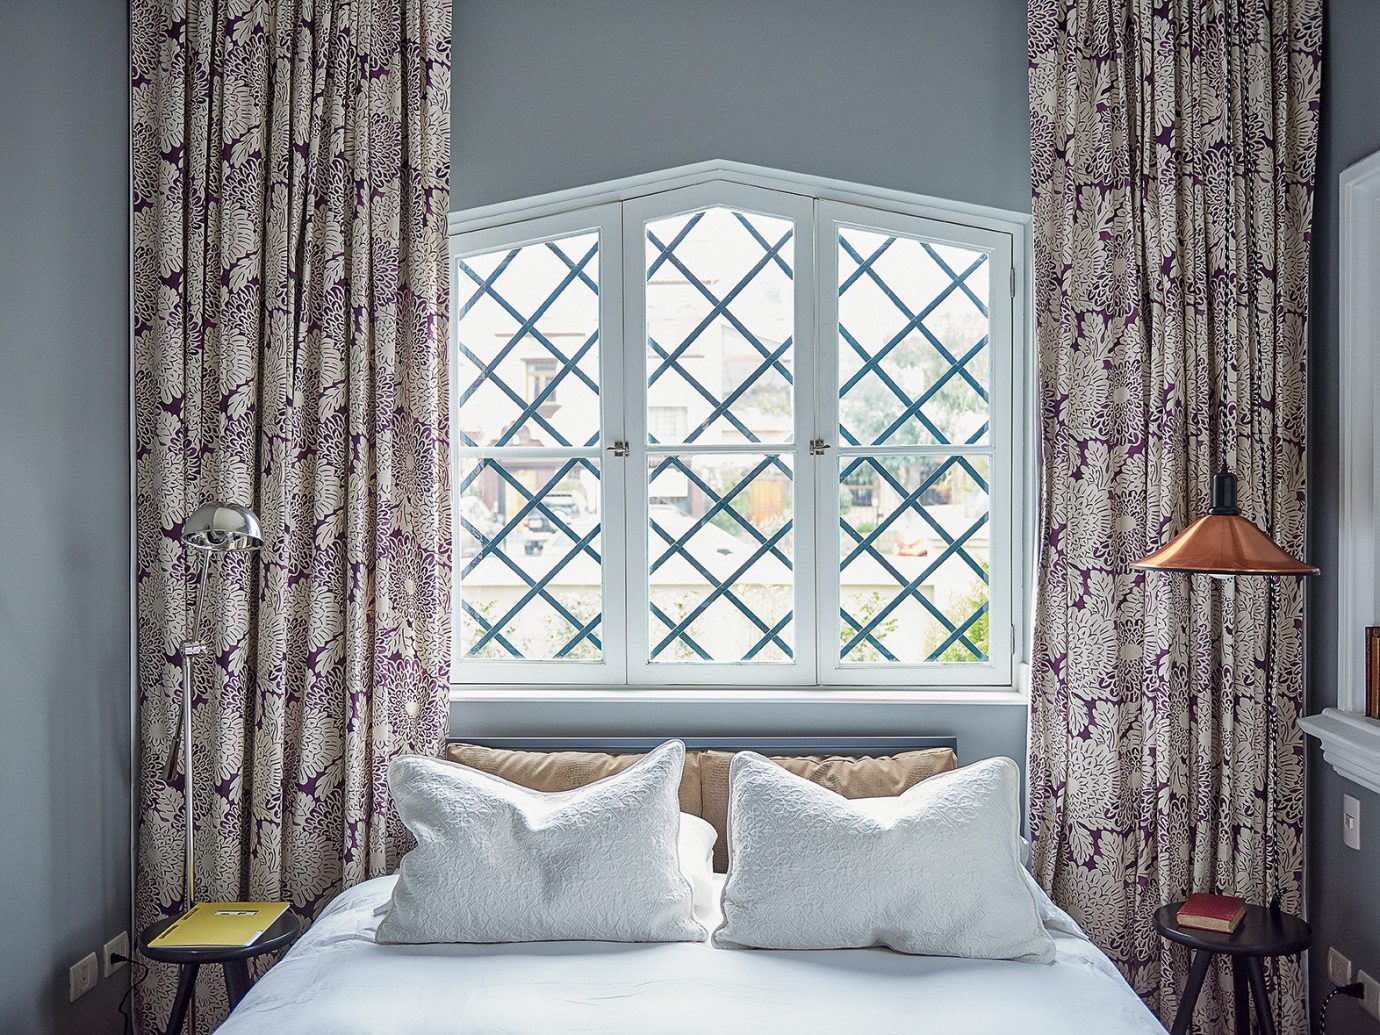 Boutique Hotels Hotels indoor wall bed room window curtain interior design Living pillow Bedroom home ceiling window treatment window covering textile decorated daylighting decor furniture